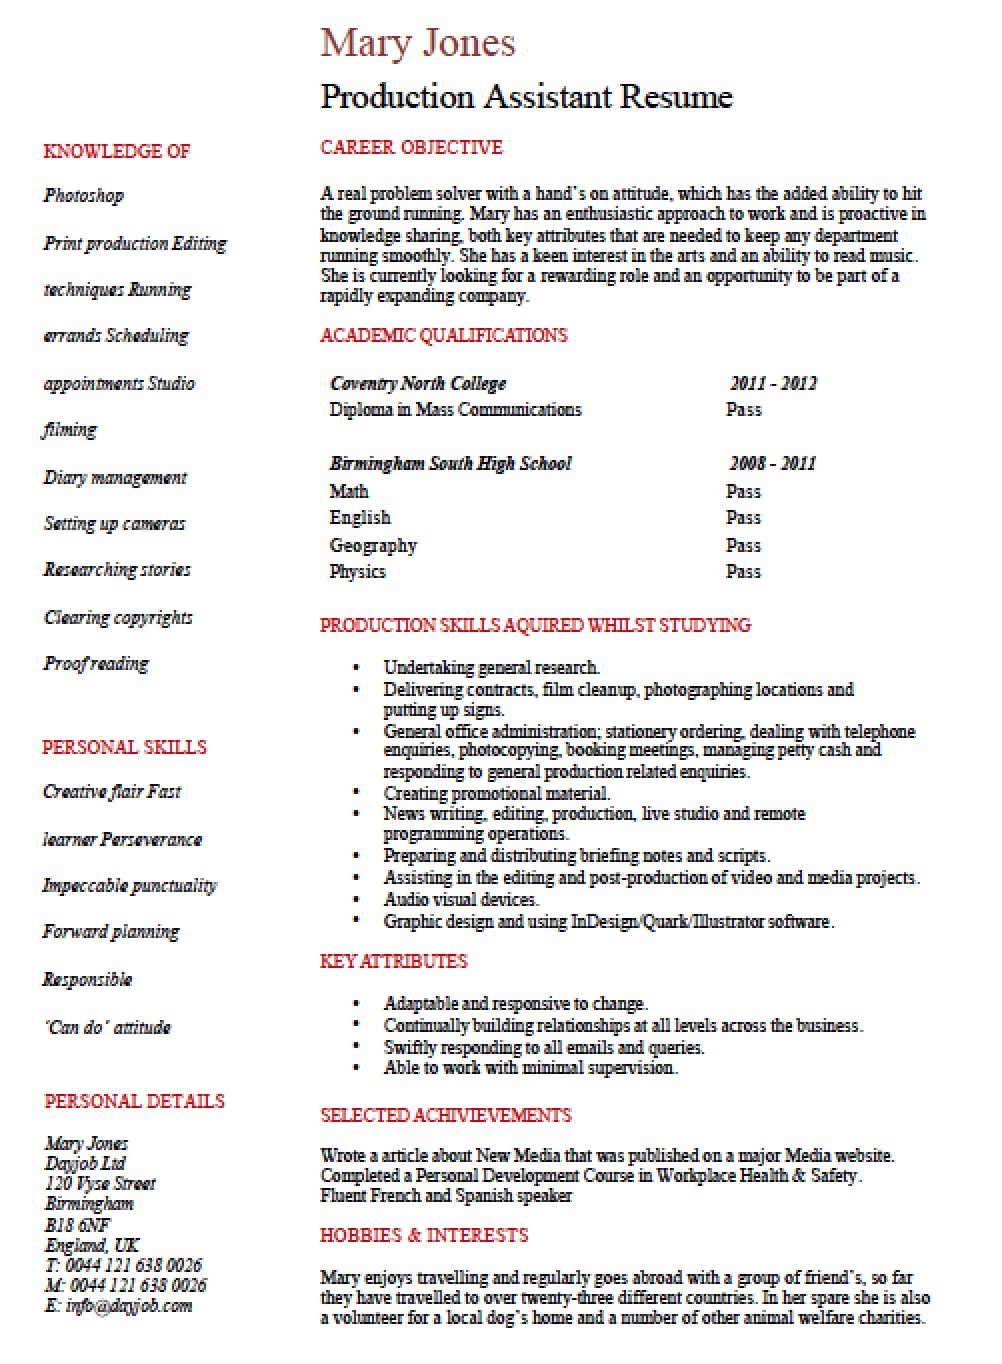 resume Production Assistant Resume free entry level production assistant resume template sample adobe pdf rich text rtf microsoft word